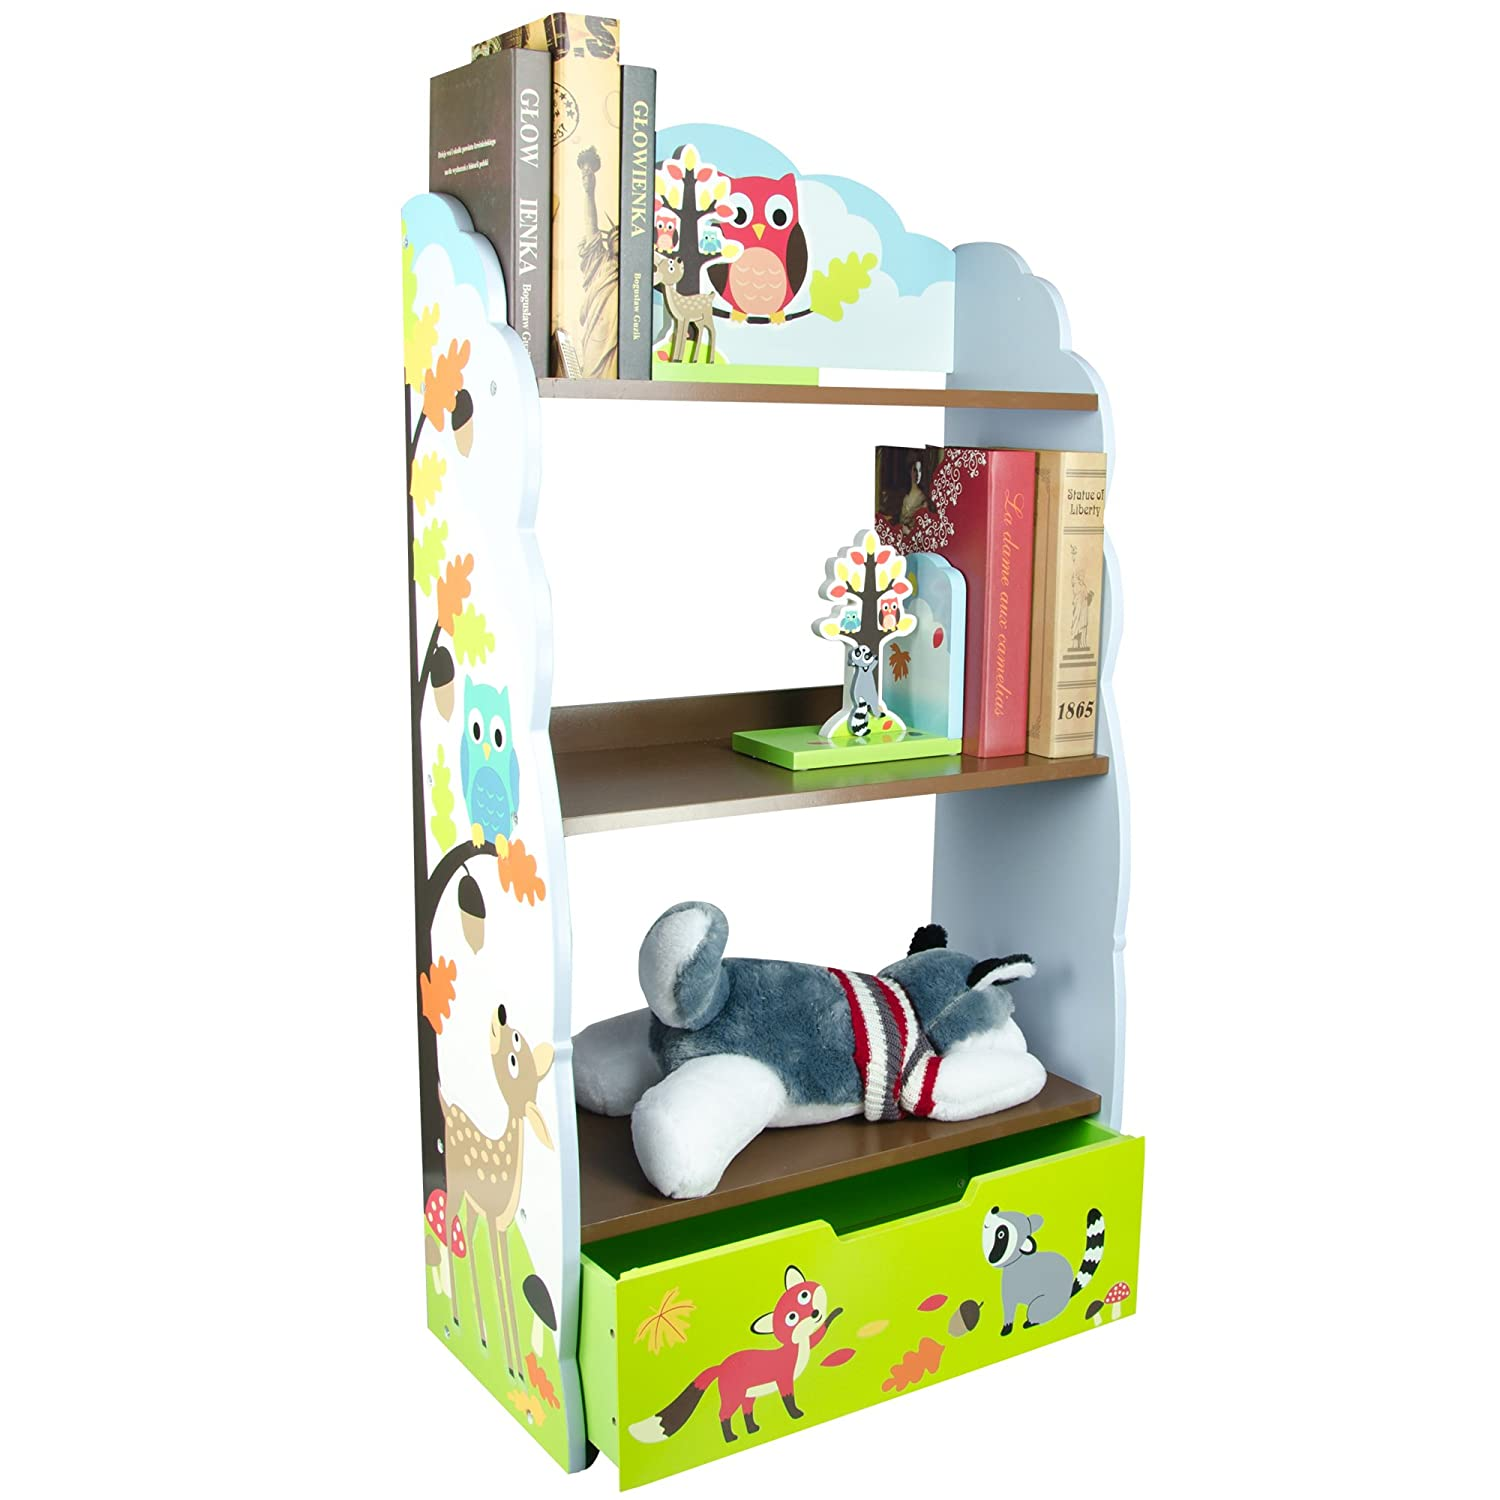 Imagination Inspiring Hand Crafted /& Hand Painted Details Fantasy Fields Non-Toxic Lead Free Water-Based Paint Enchanted Woodland Thematic Kids Wooden Bookcase with Storage